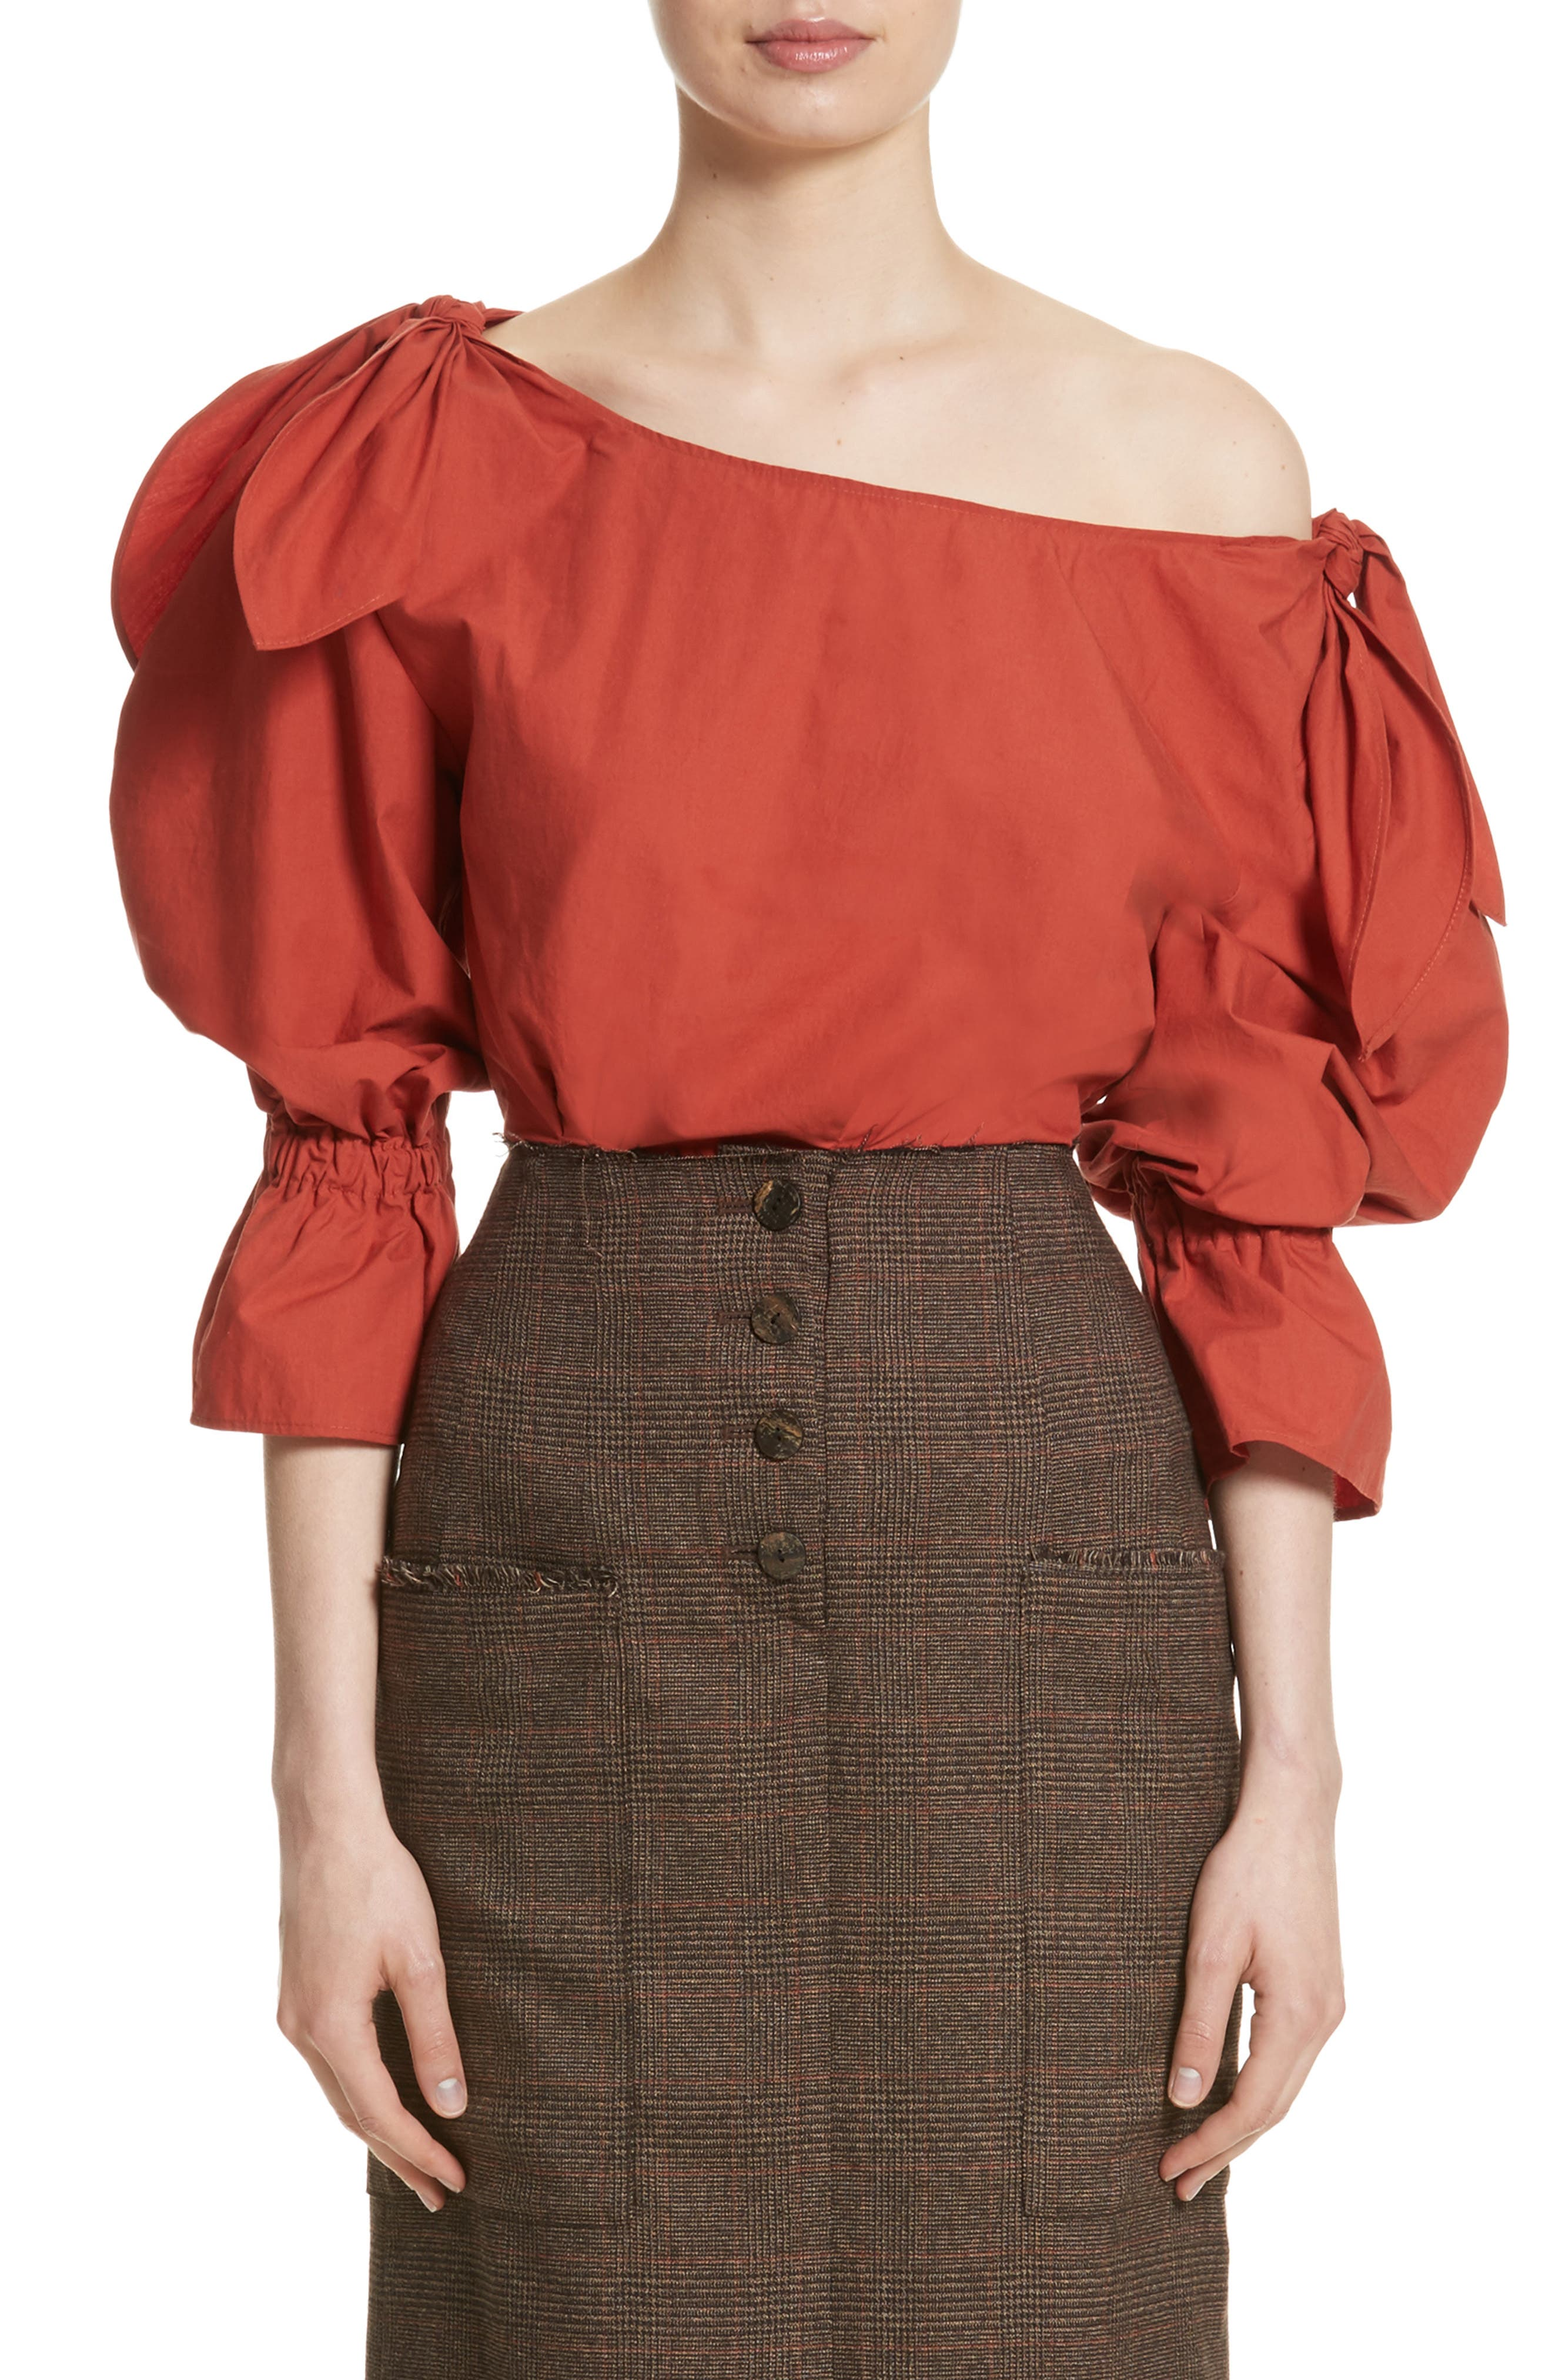 Michelle One-Shoulder Puff Sleeve Blouse,                         Main,                         color, 810